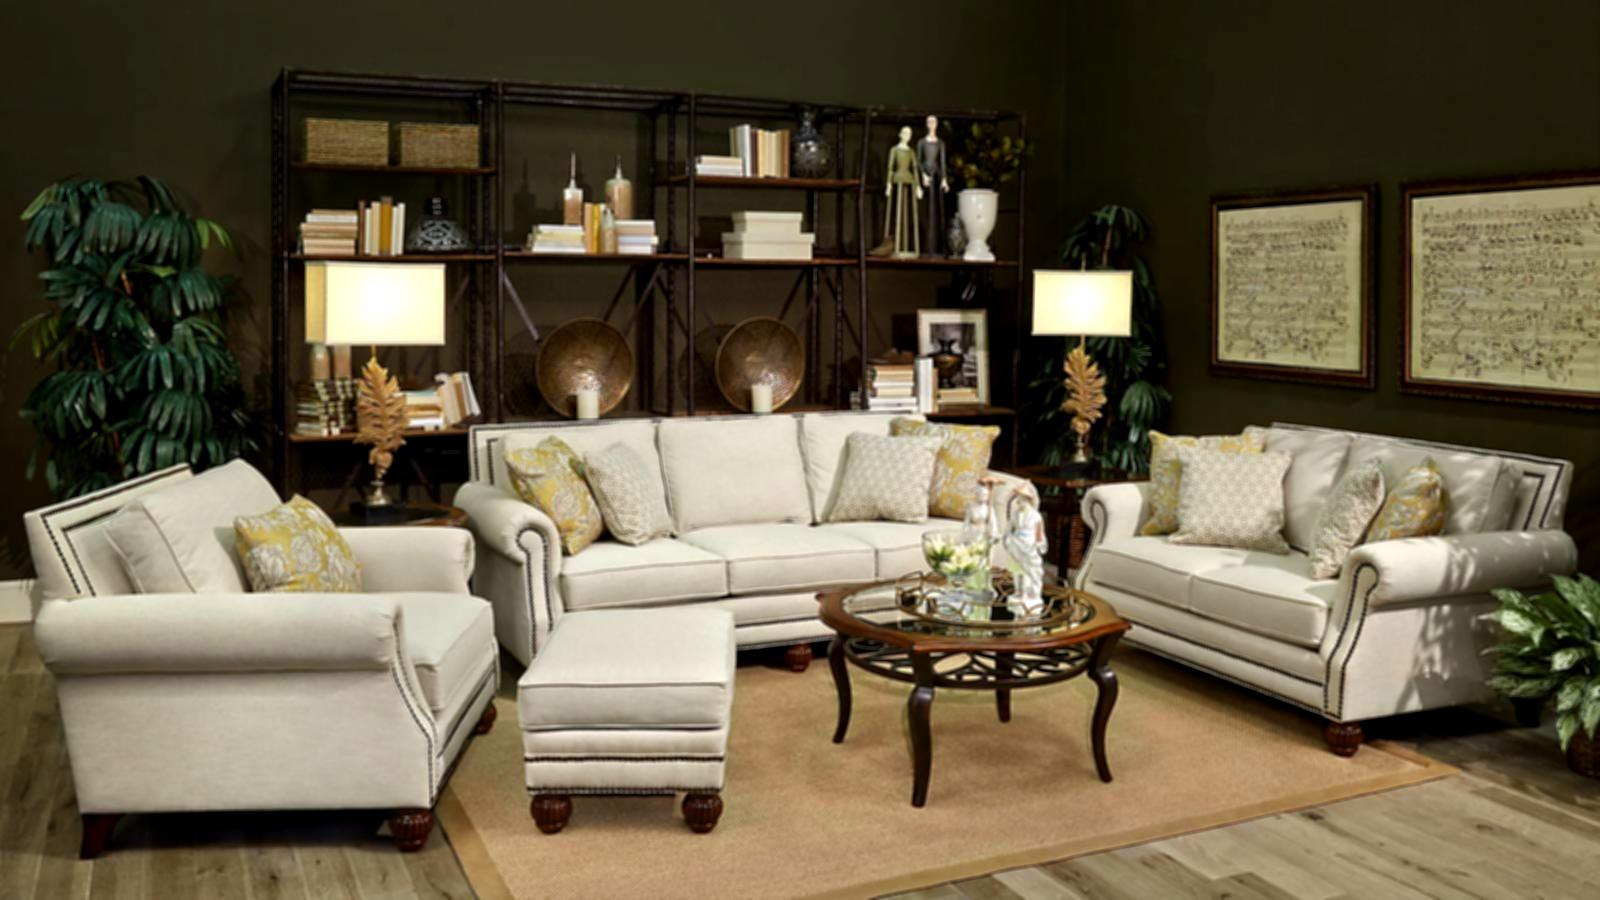 Living Room Furniture Sale Newsgr with 14 Awesome Ideas How to Craft Cheap Living Room Sets For Sale